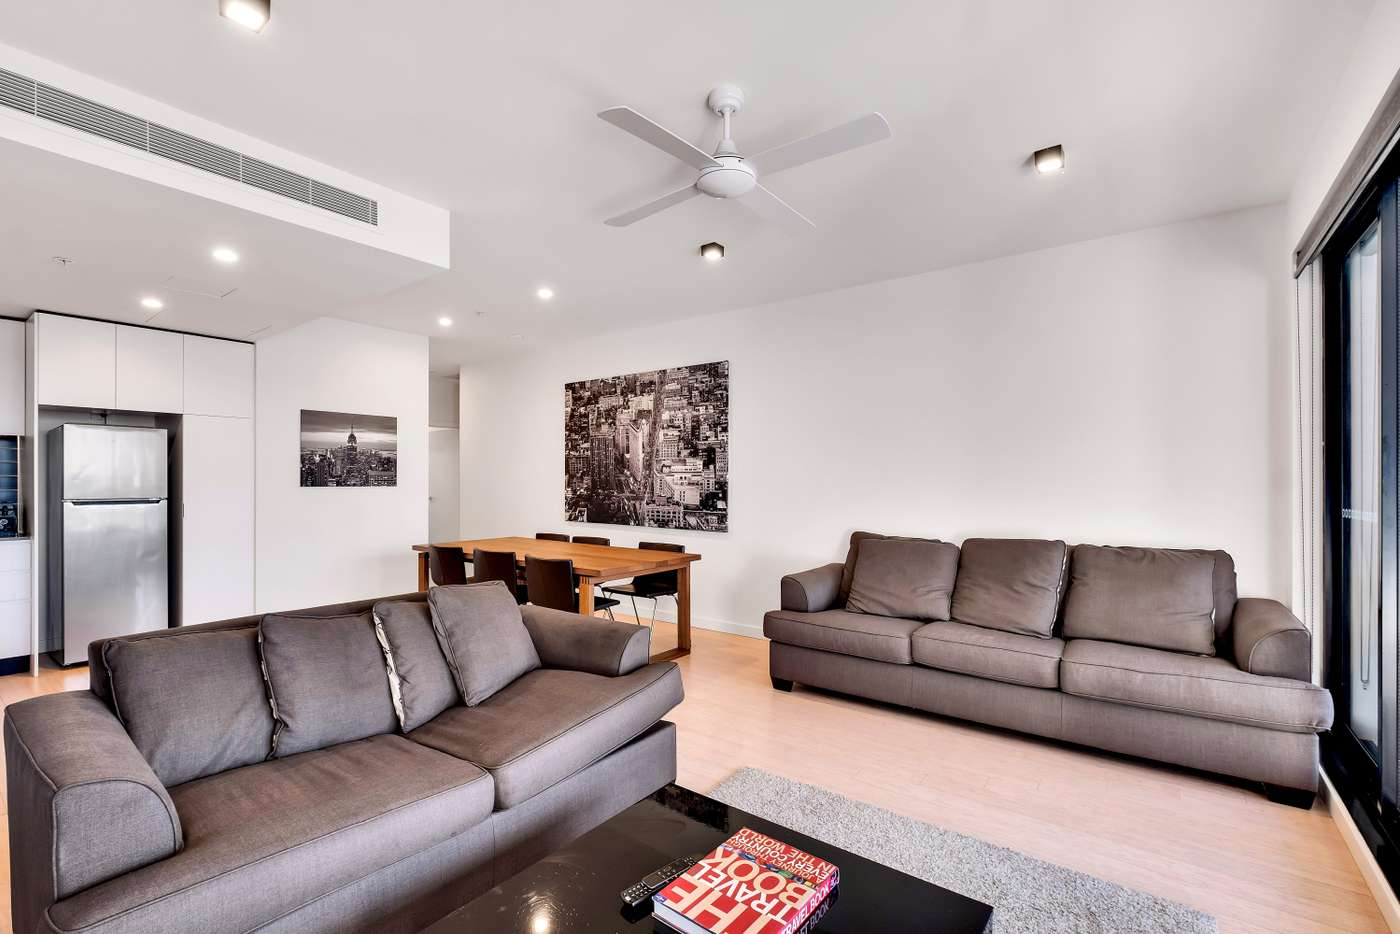 Sixth view of Homely apartment listing, 208/14 Sixth Street, Bowden SA 5007